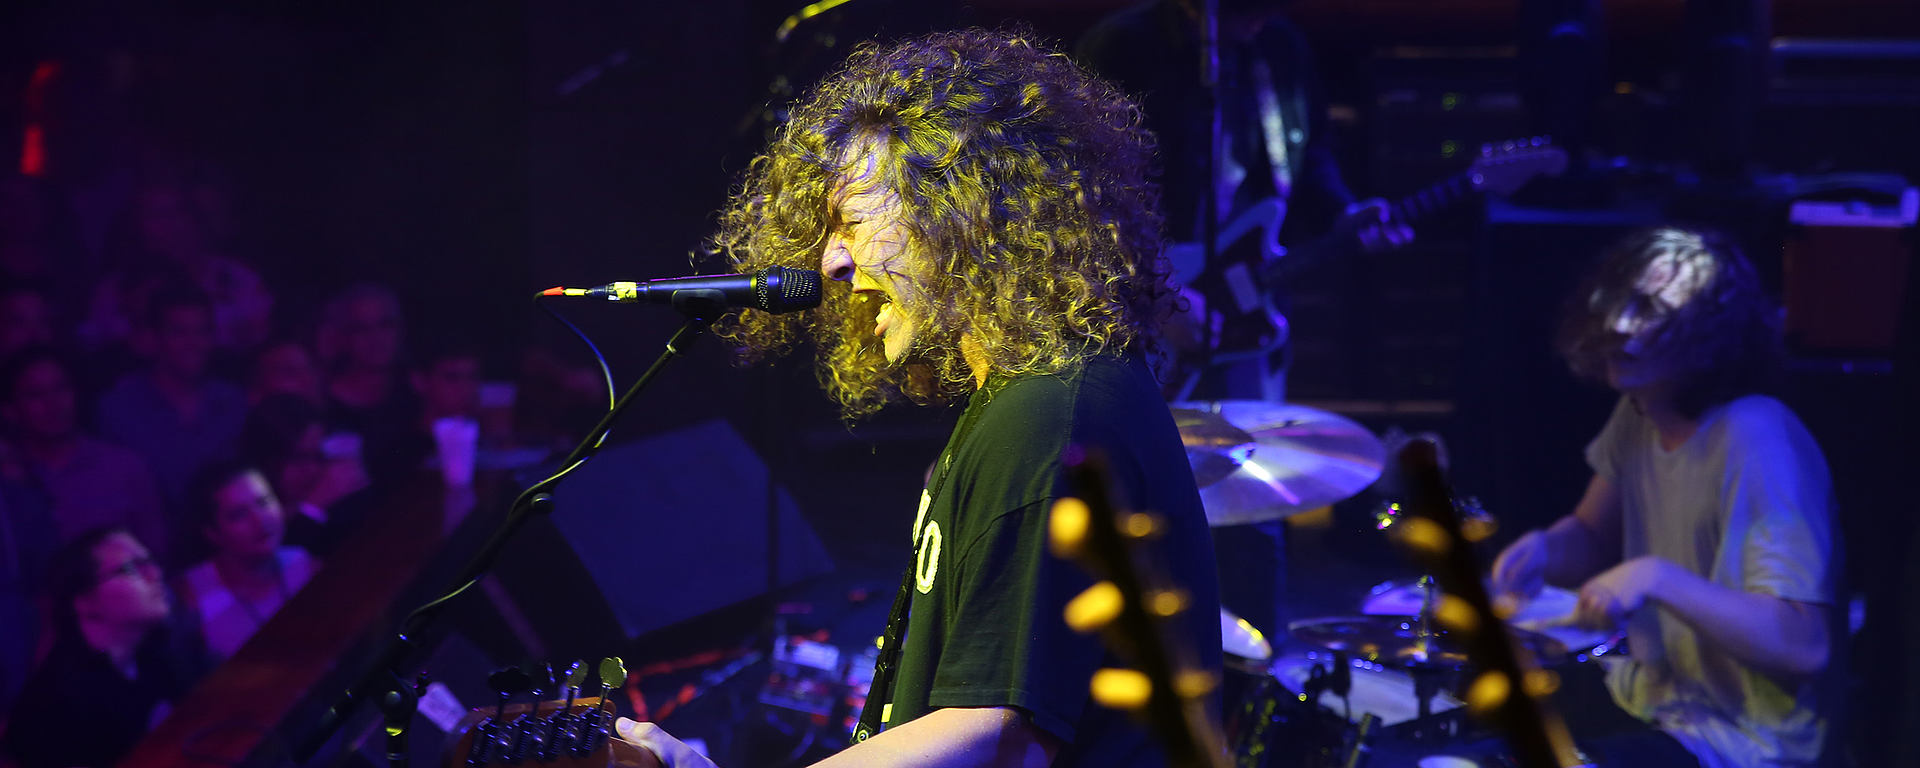 JoeWhite and his MTP 550 DM live performance microphone